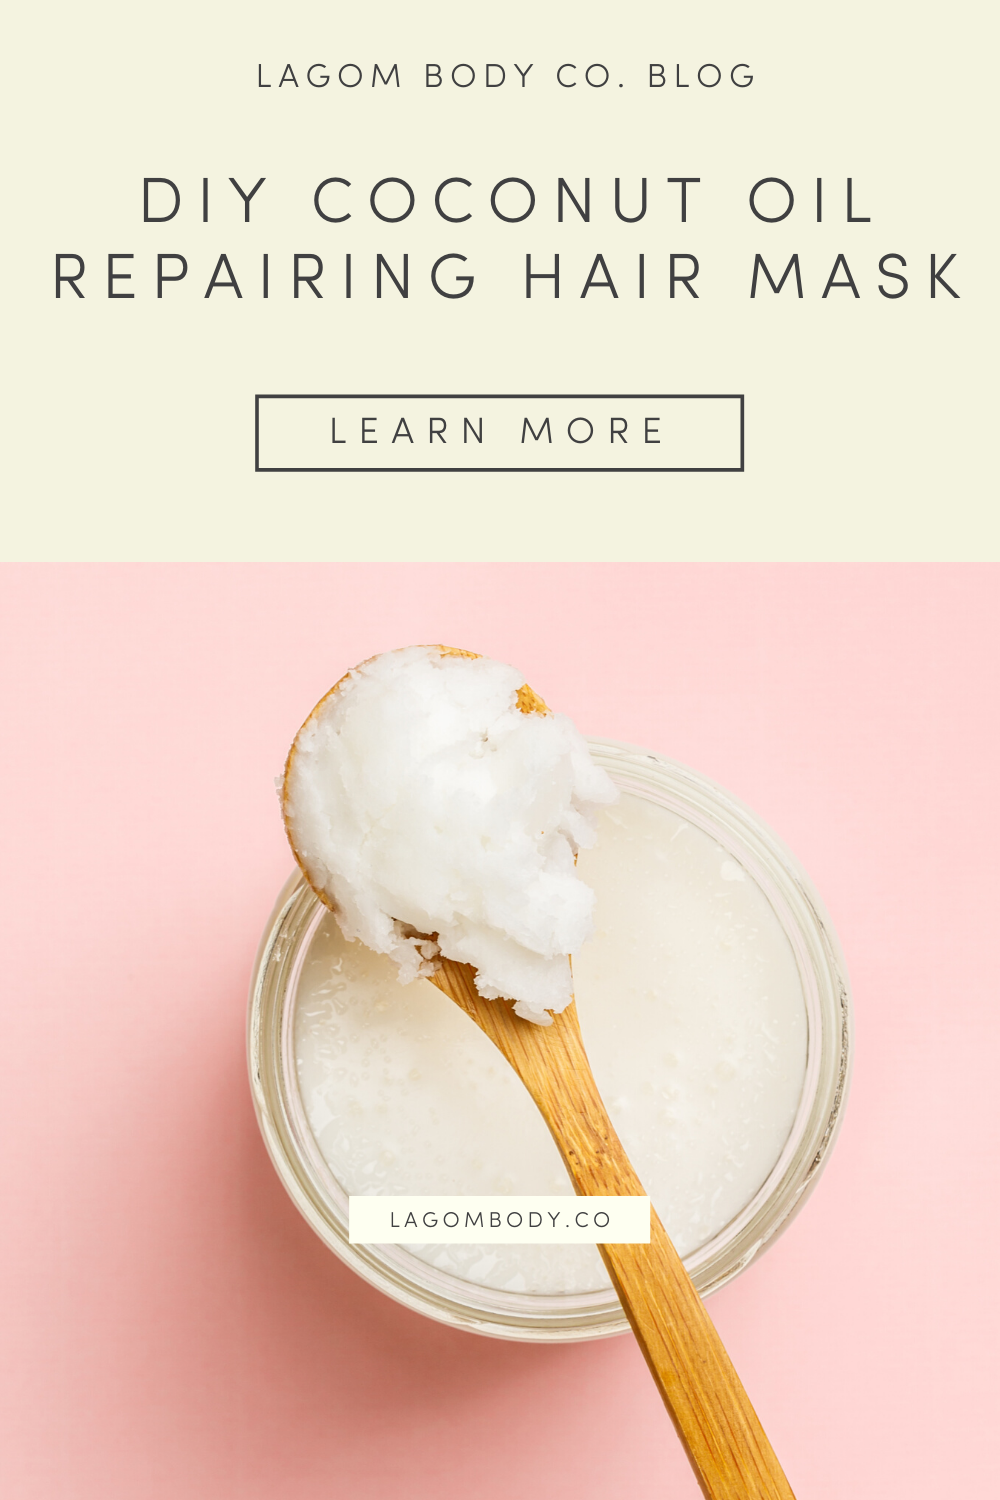 DIY Coconut Oil Repairing Hair Mask Promo